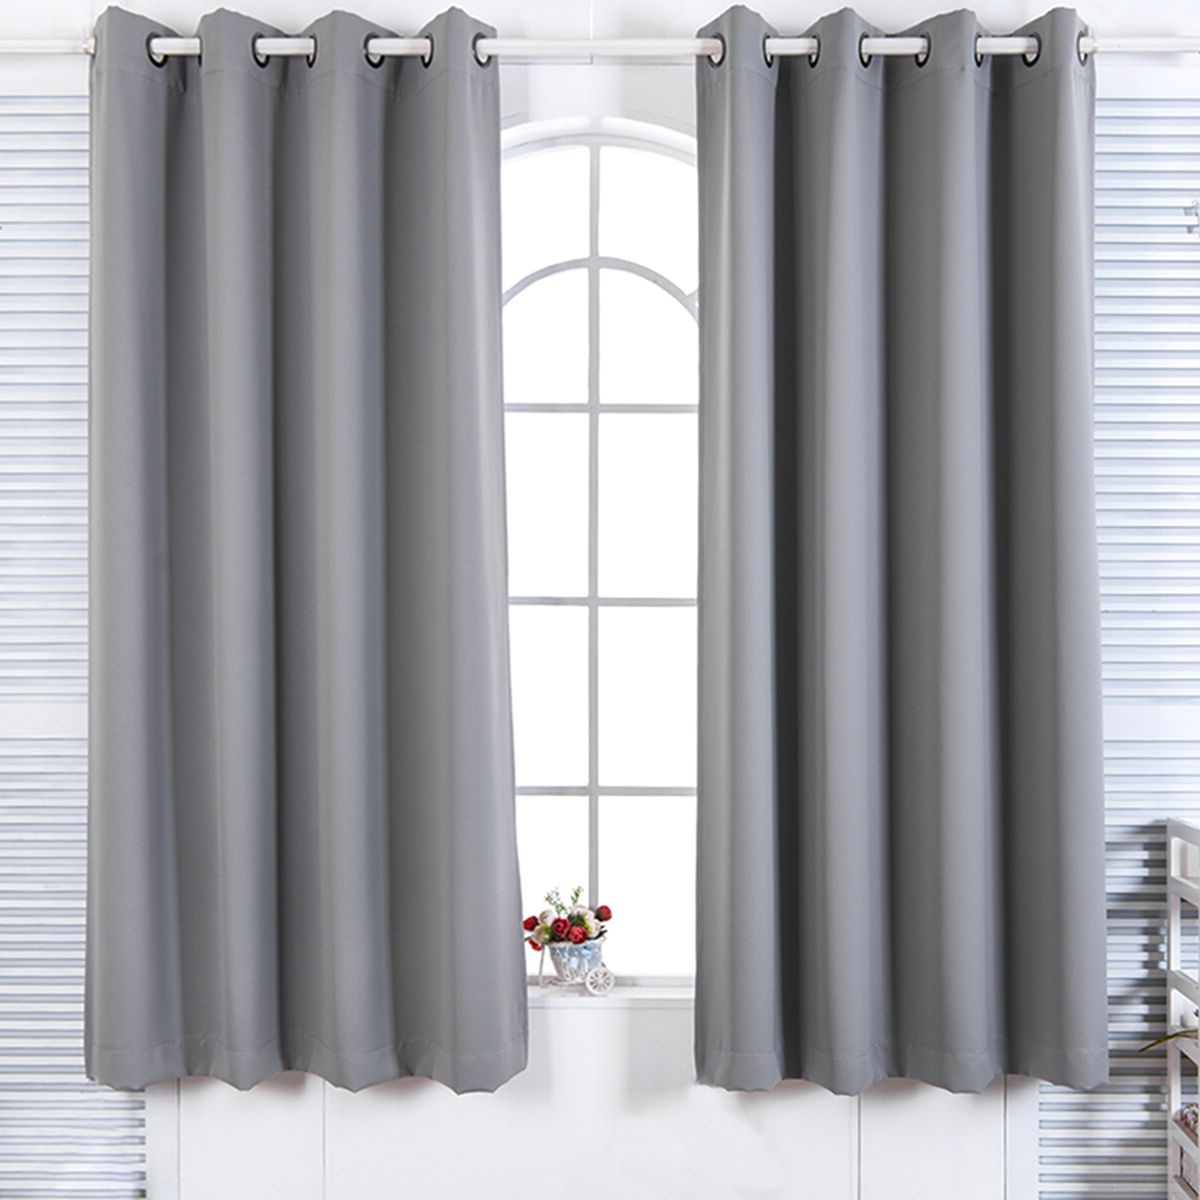 "Solid Insulated Thermal Blackout Curtain Panel Pairs Throughout Latest Details About 84"" Lamia Premium Solid Insulated Thermal Blackout Grommet  Window Panelseleg (View 15 of 20)"